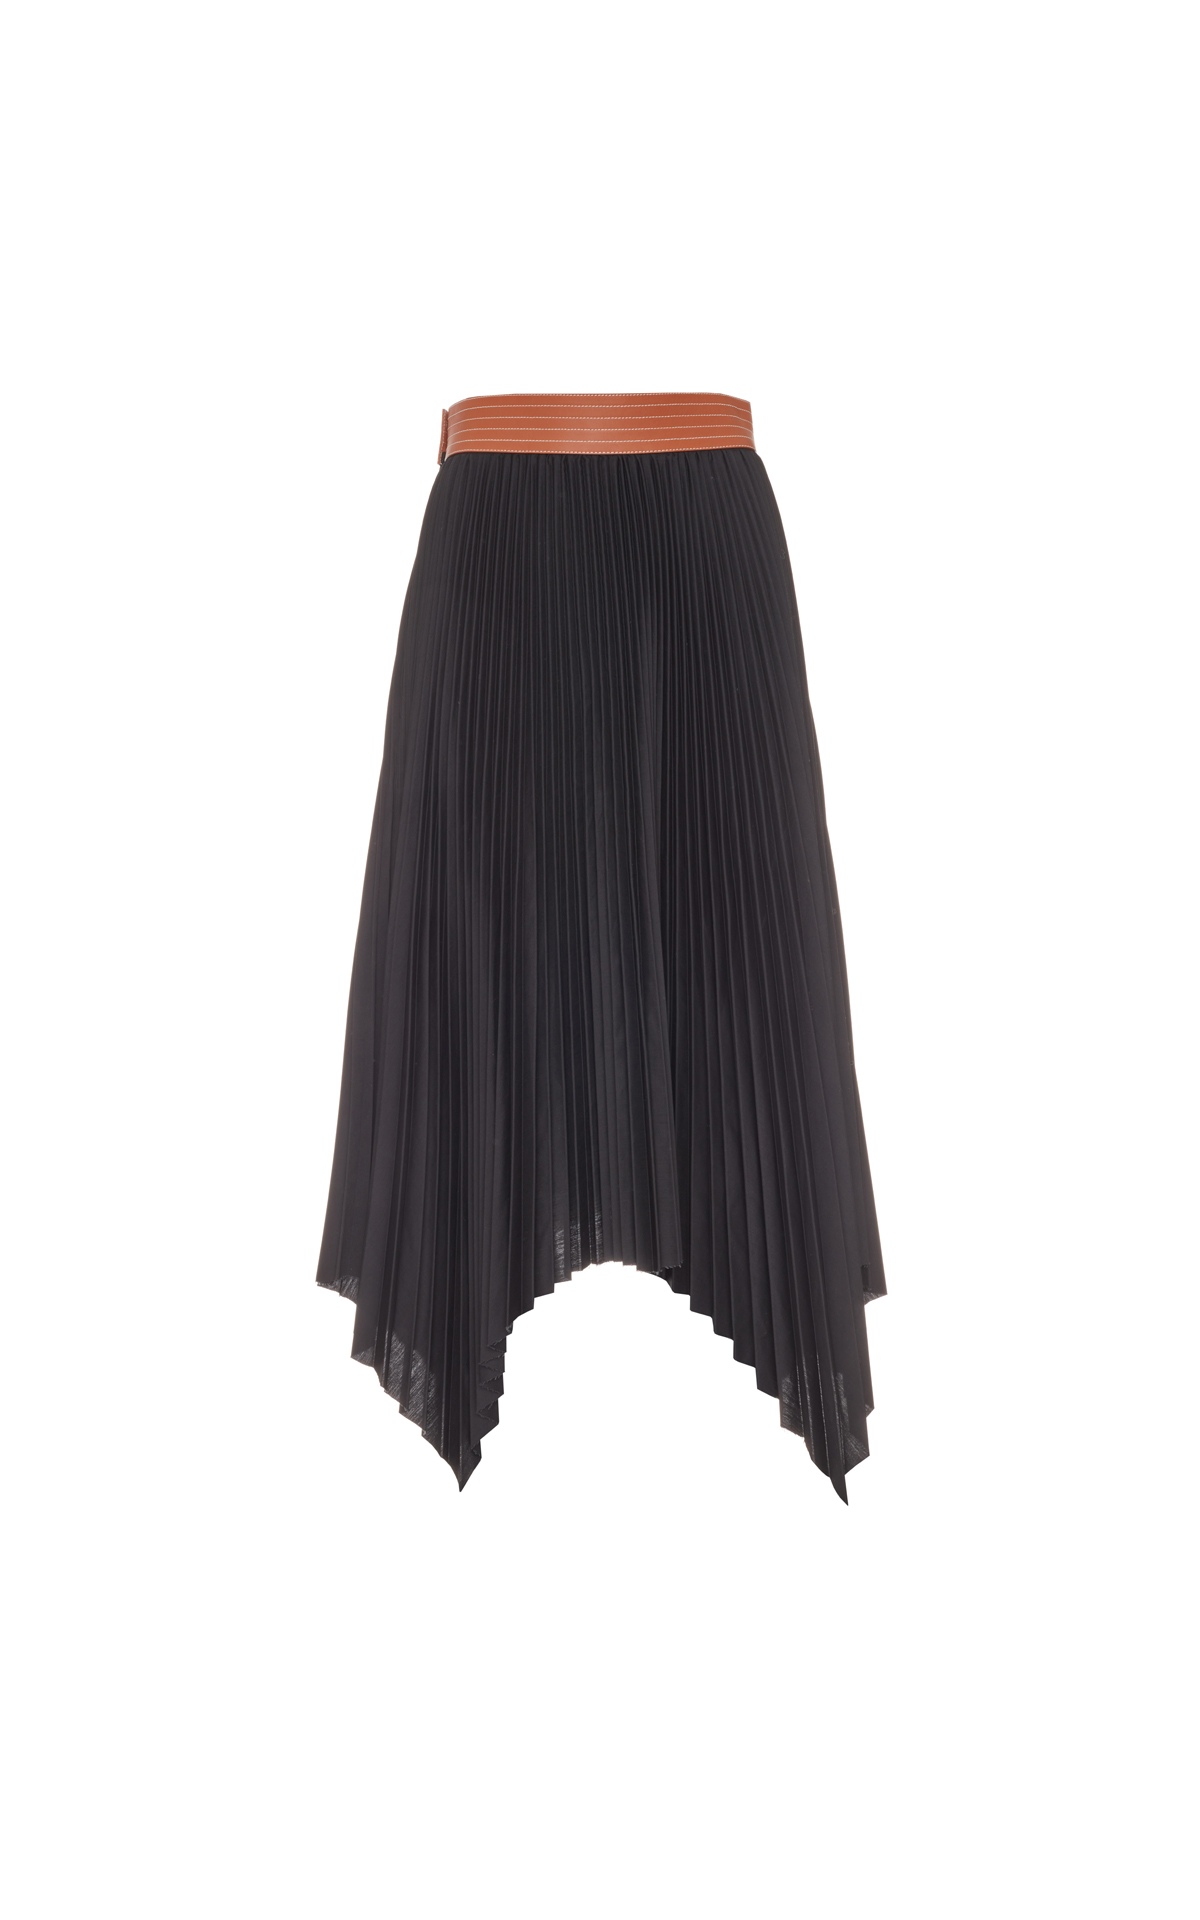 La Vallée Village Loewe Pleated Skirt Negro/Br